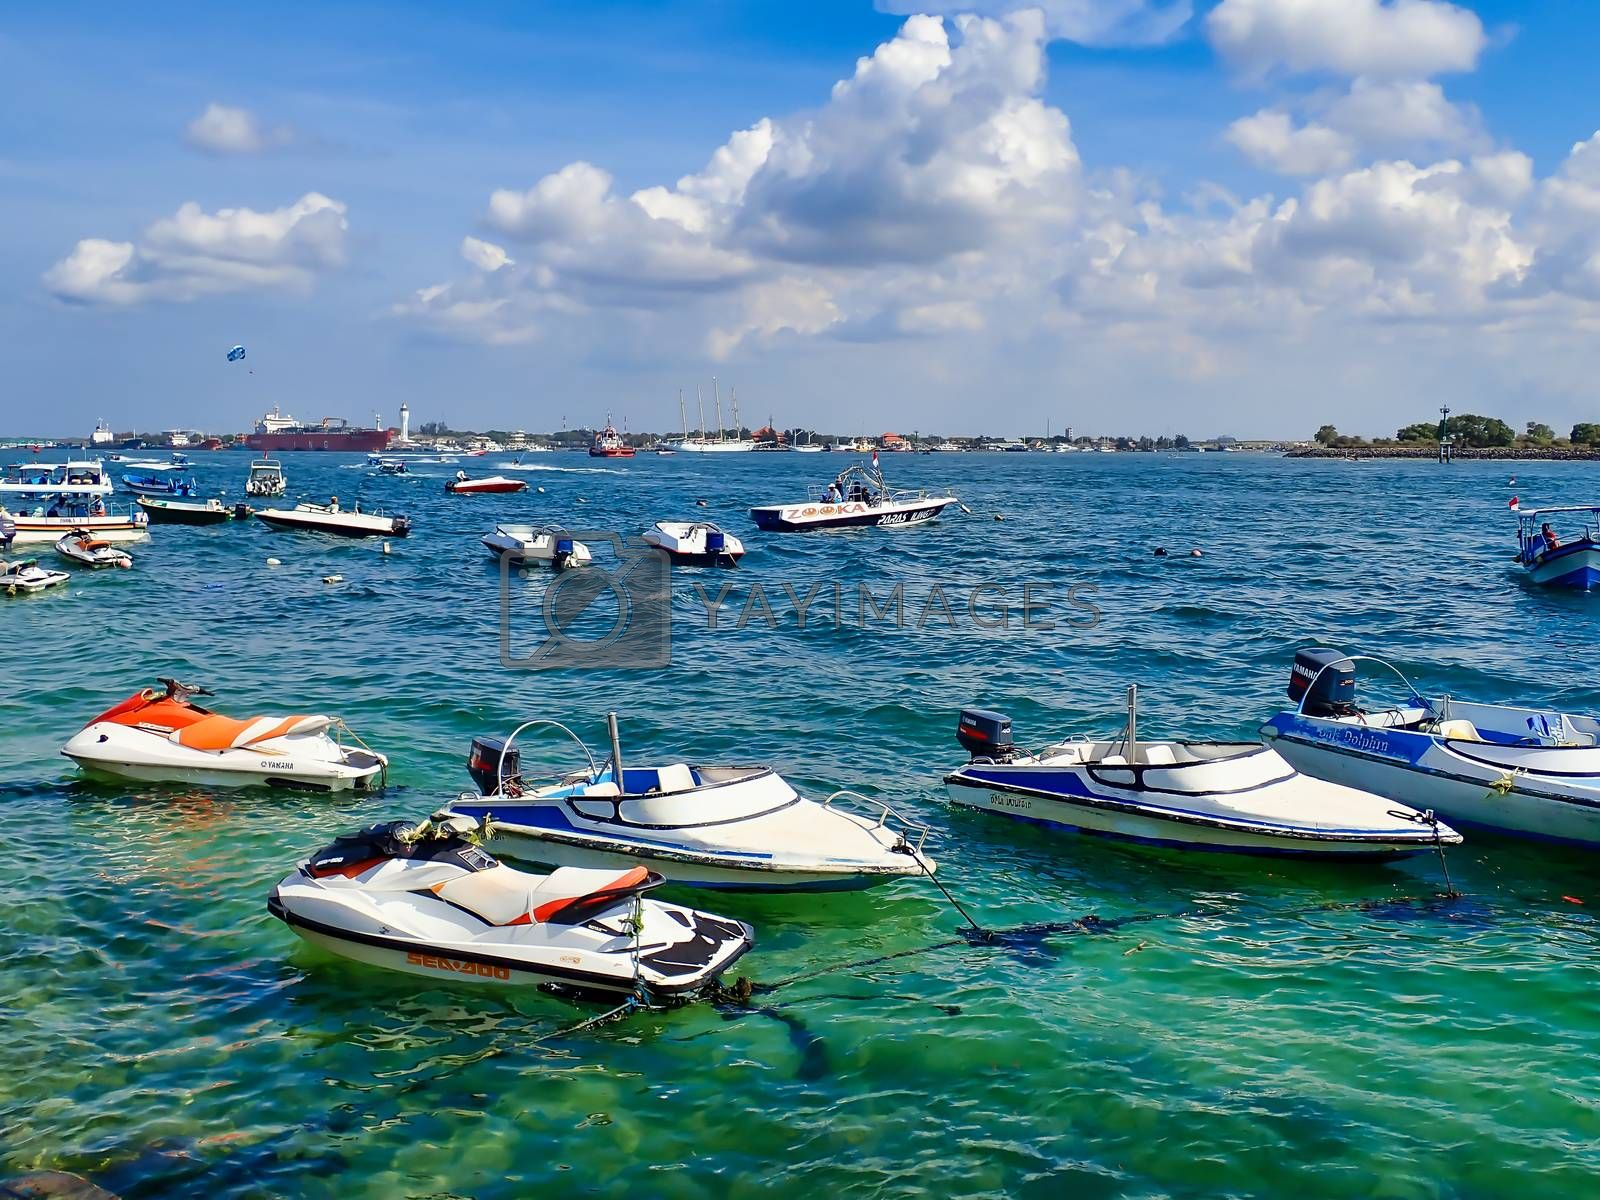 Bali, Indonesia - July 11, 2020 : Bali Water sports vehicle and tourism package in Indonesia